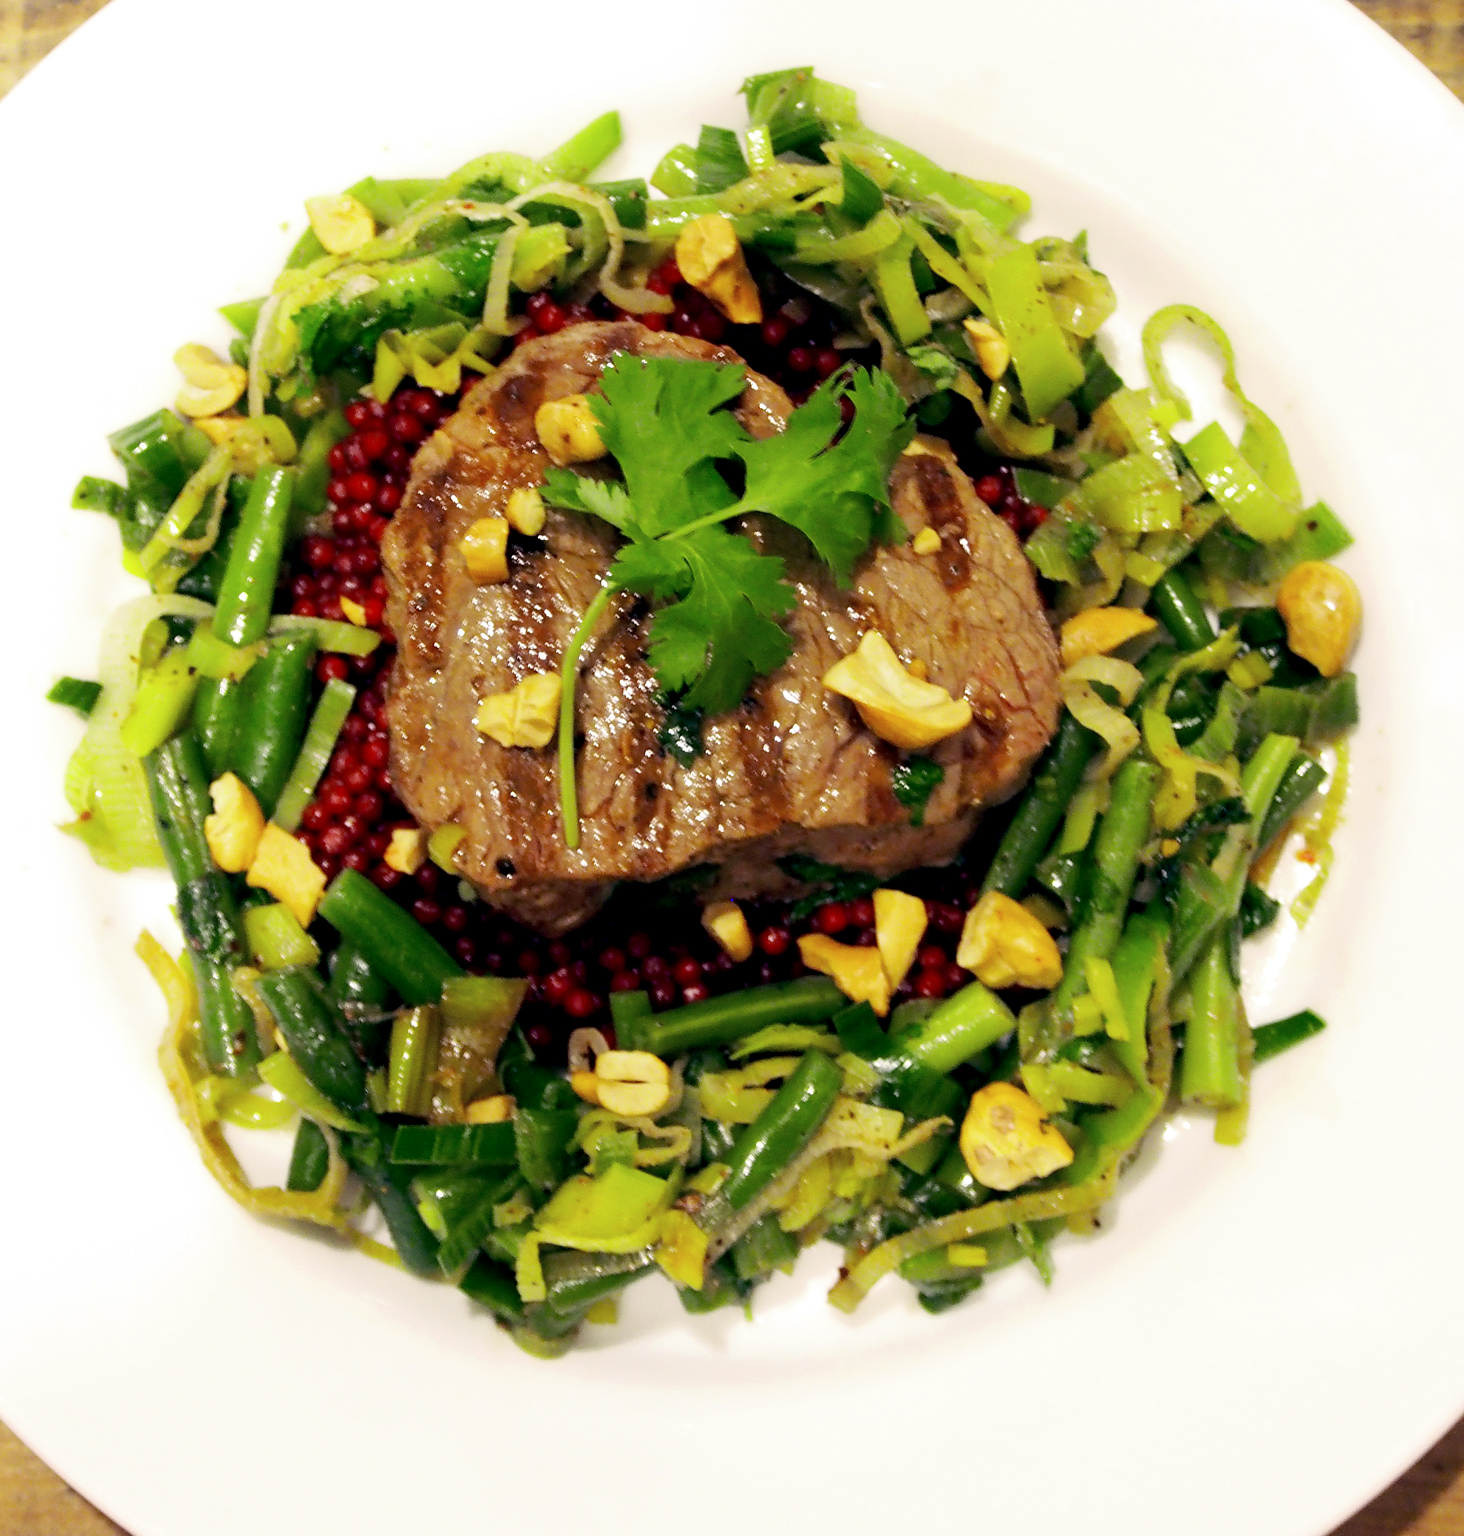 Meisterdish's  Lavender steak on pearl couscous with green beans, leeks, and cashew nut. All photos ©  Suzanne Spiegoski